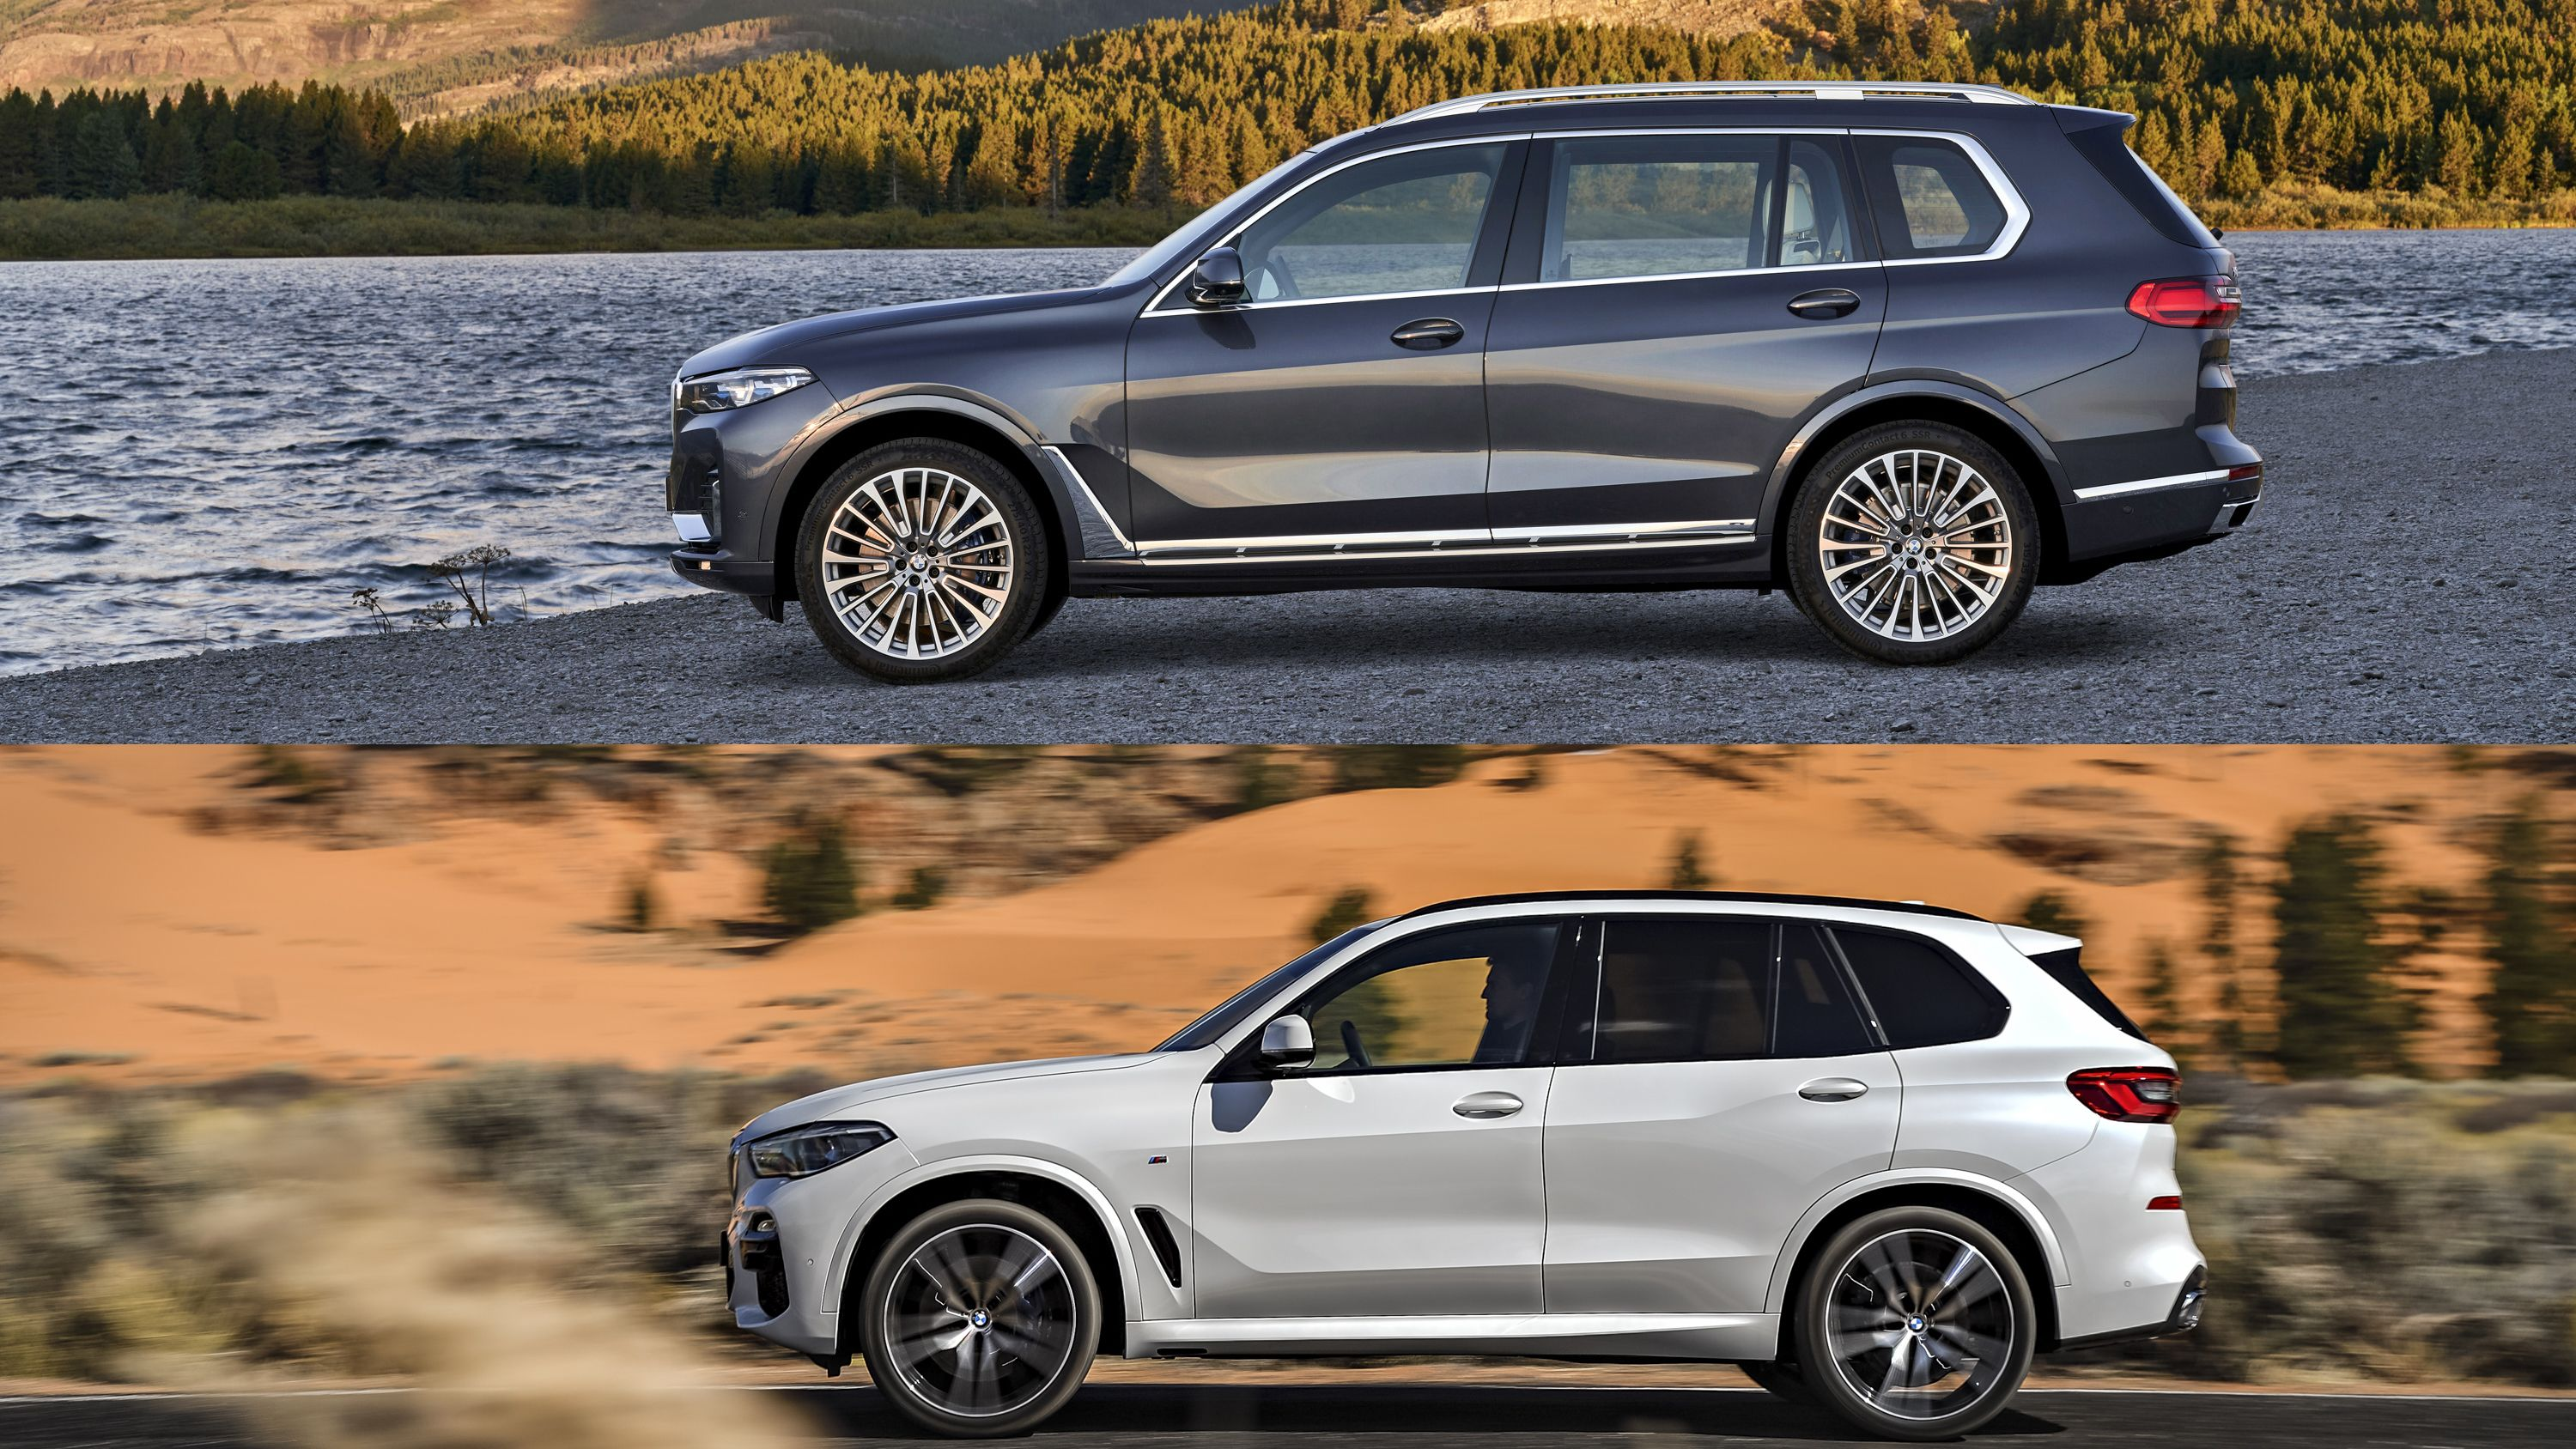 Is The 2019 Bmw X7 Too Similar To The Bmw X5 Bmw X7 Bmw X5 Bmw